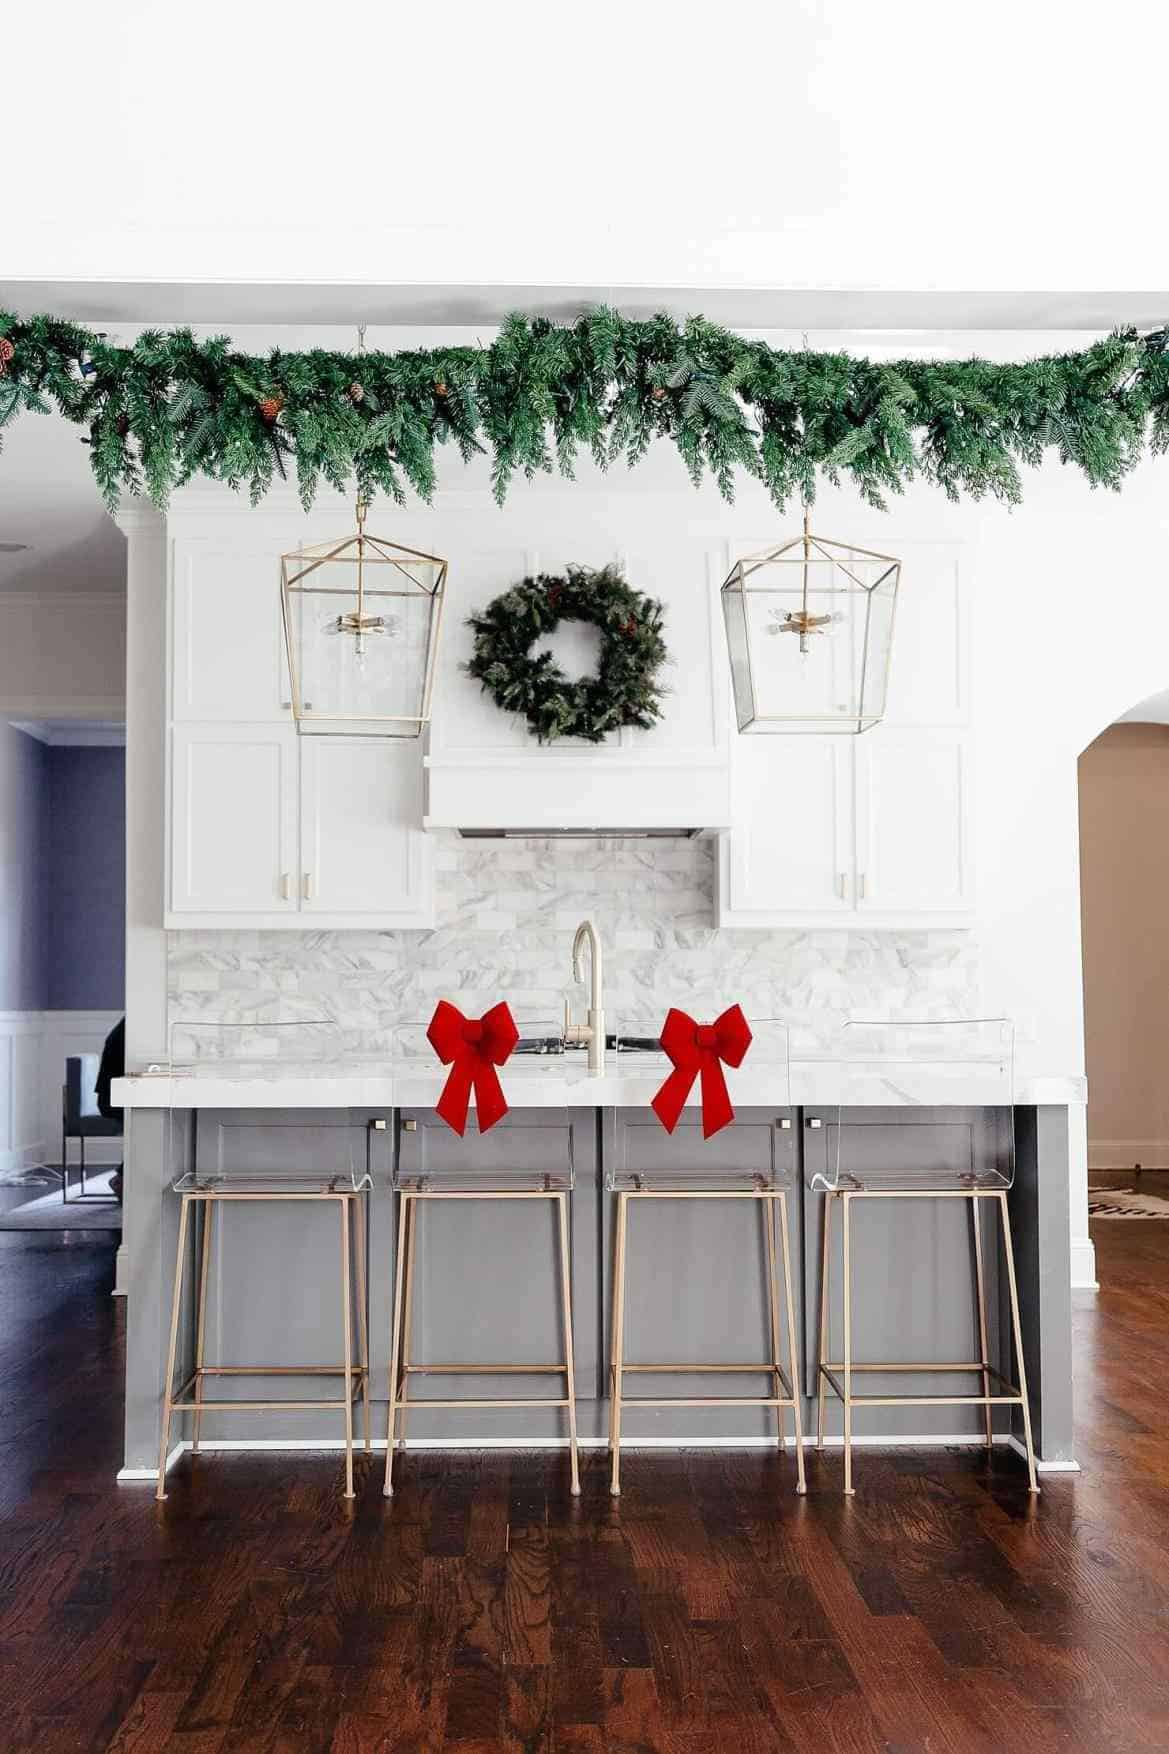 greenery in kitchen 2 Bring holiday cheer to your kitchen with these Christmas ideas